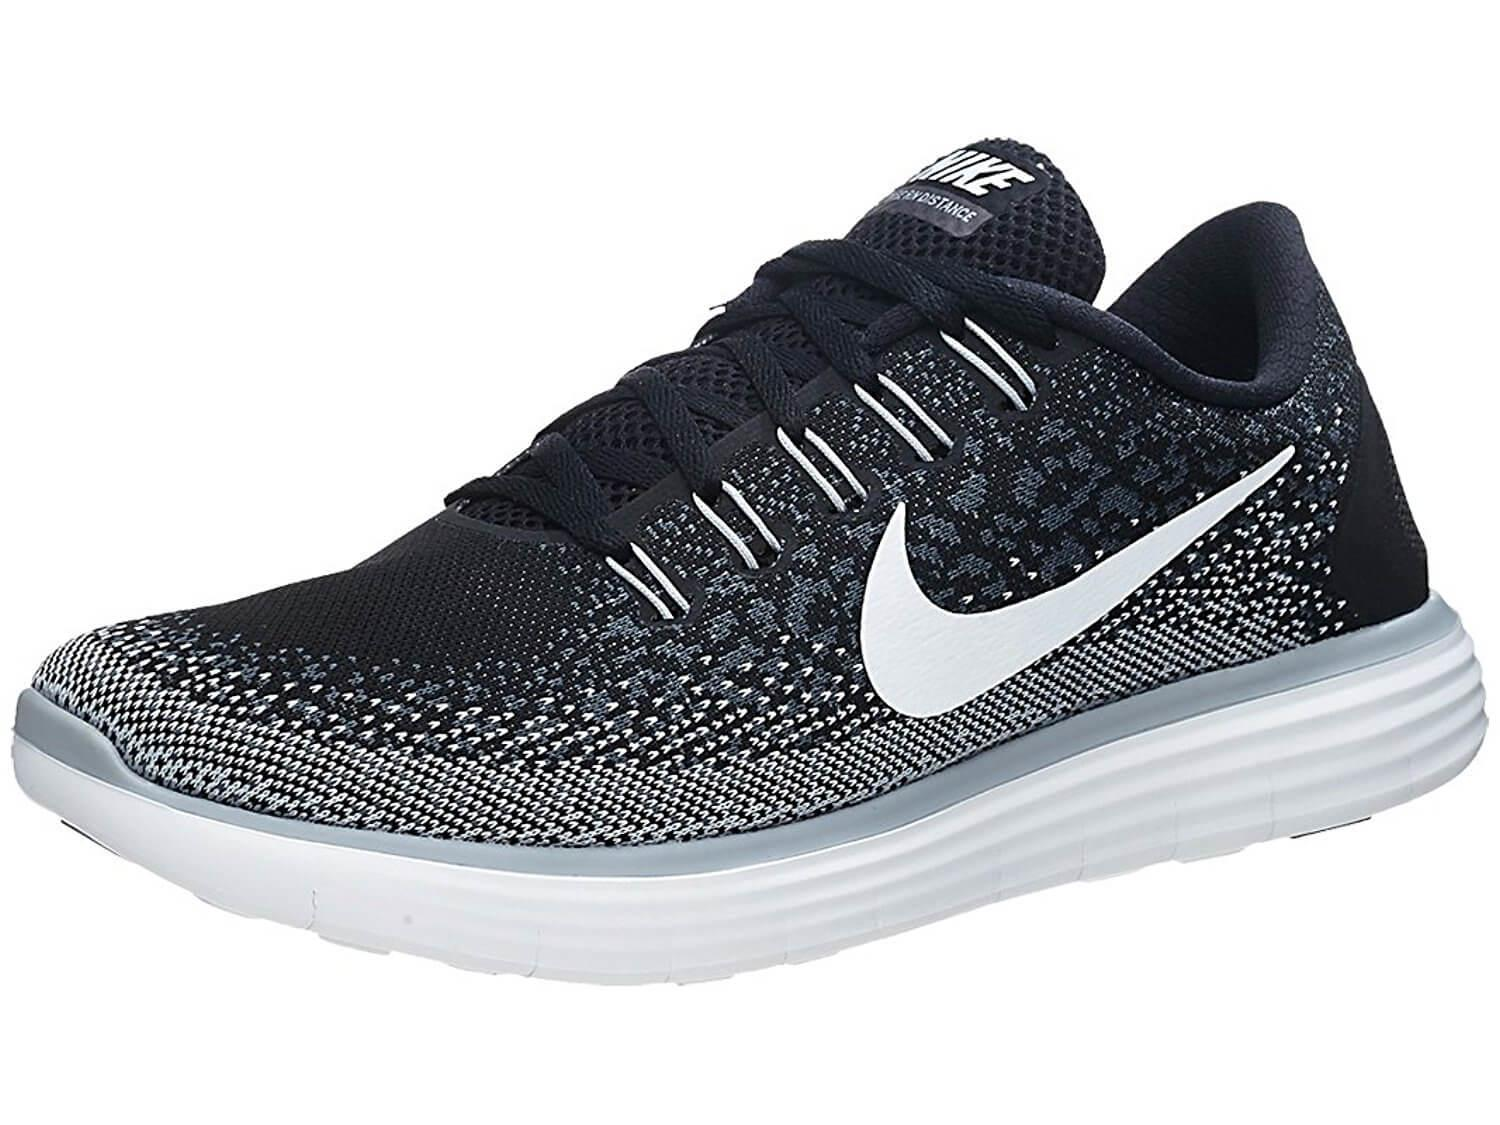 a34d9b3e8b7 The Nike Free RN Distance is an excellent all-around running shoe.